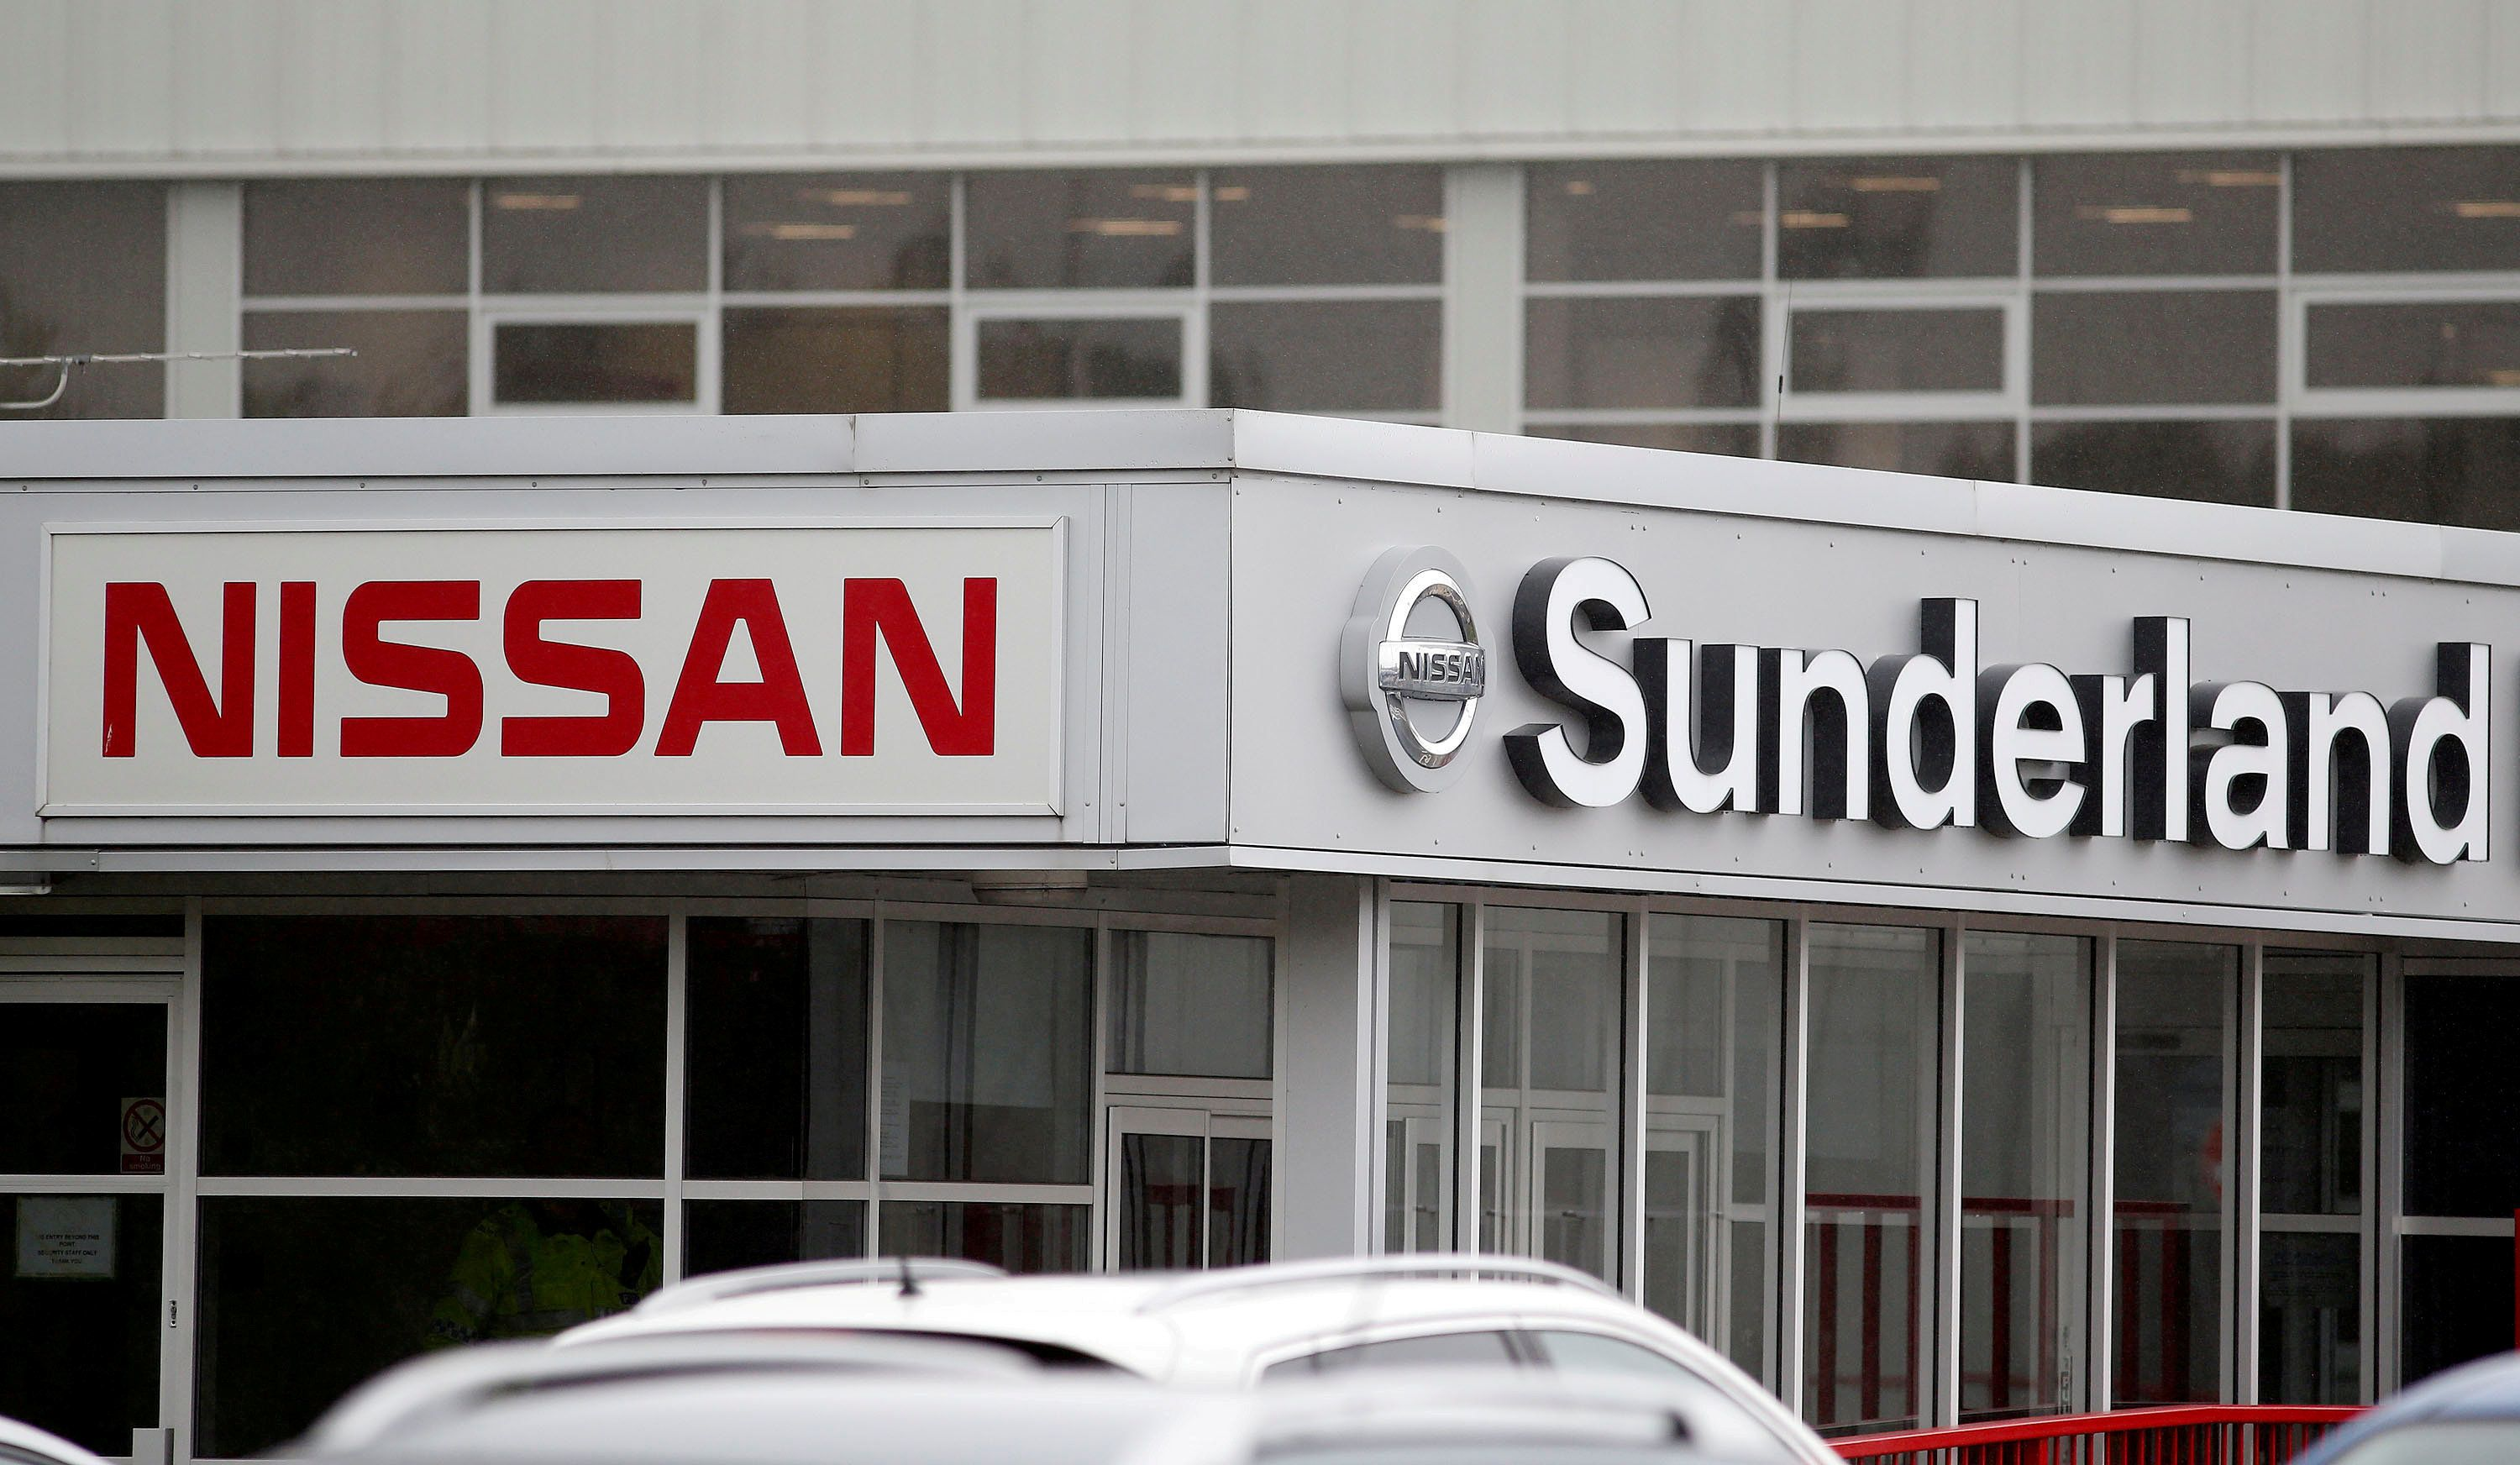 Nissan promised £80m to build cars in Sunderland